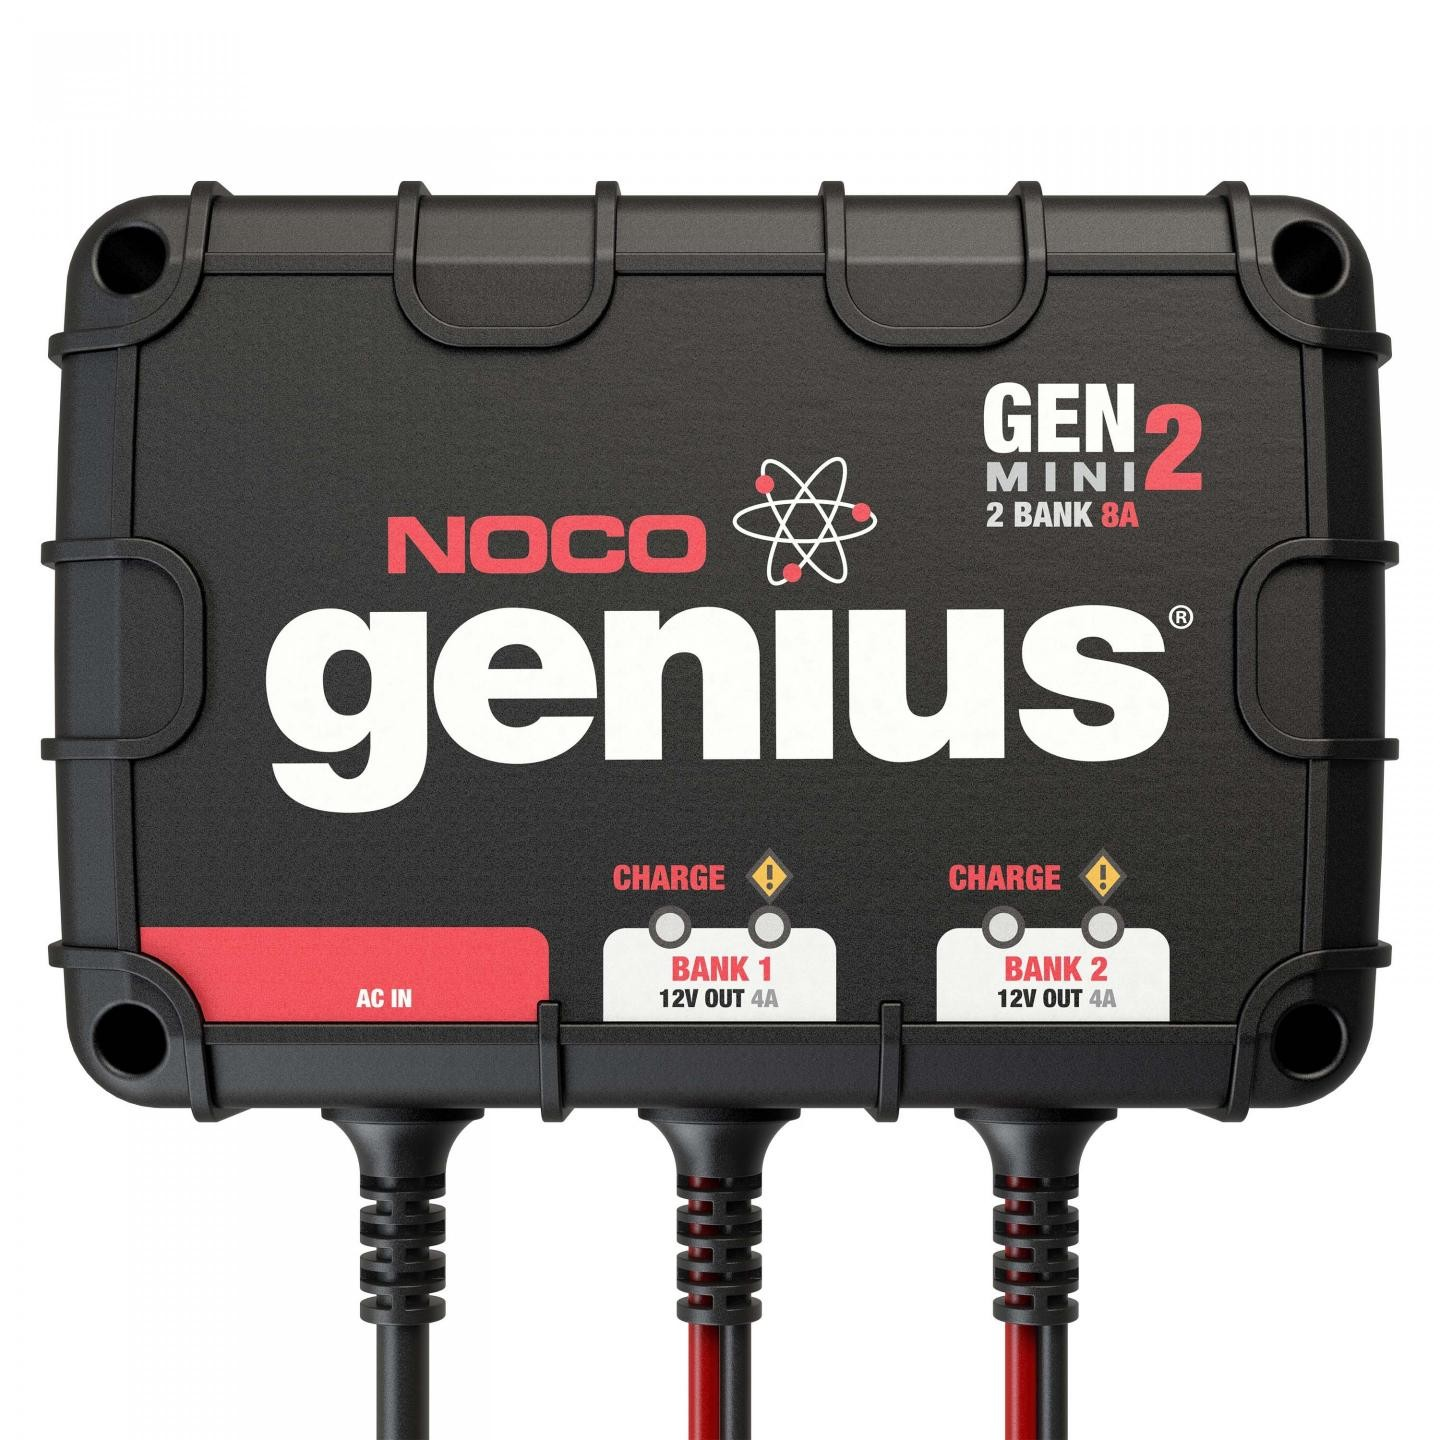 Noco Wiring Diagram Data Outlet Series 2 Bank 8a On Board Battery Charger Genm2 Gfci Outlets In